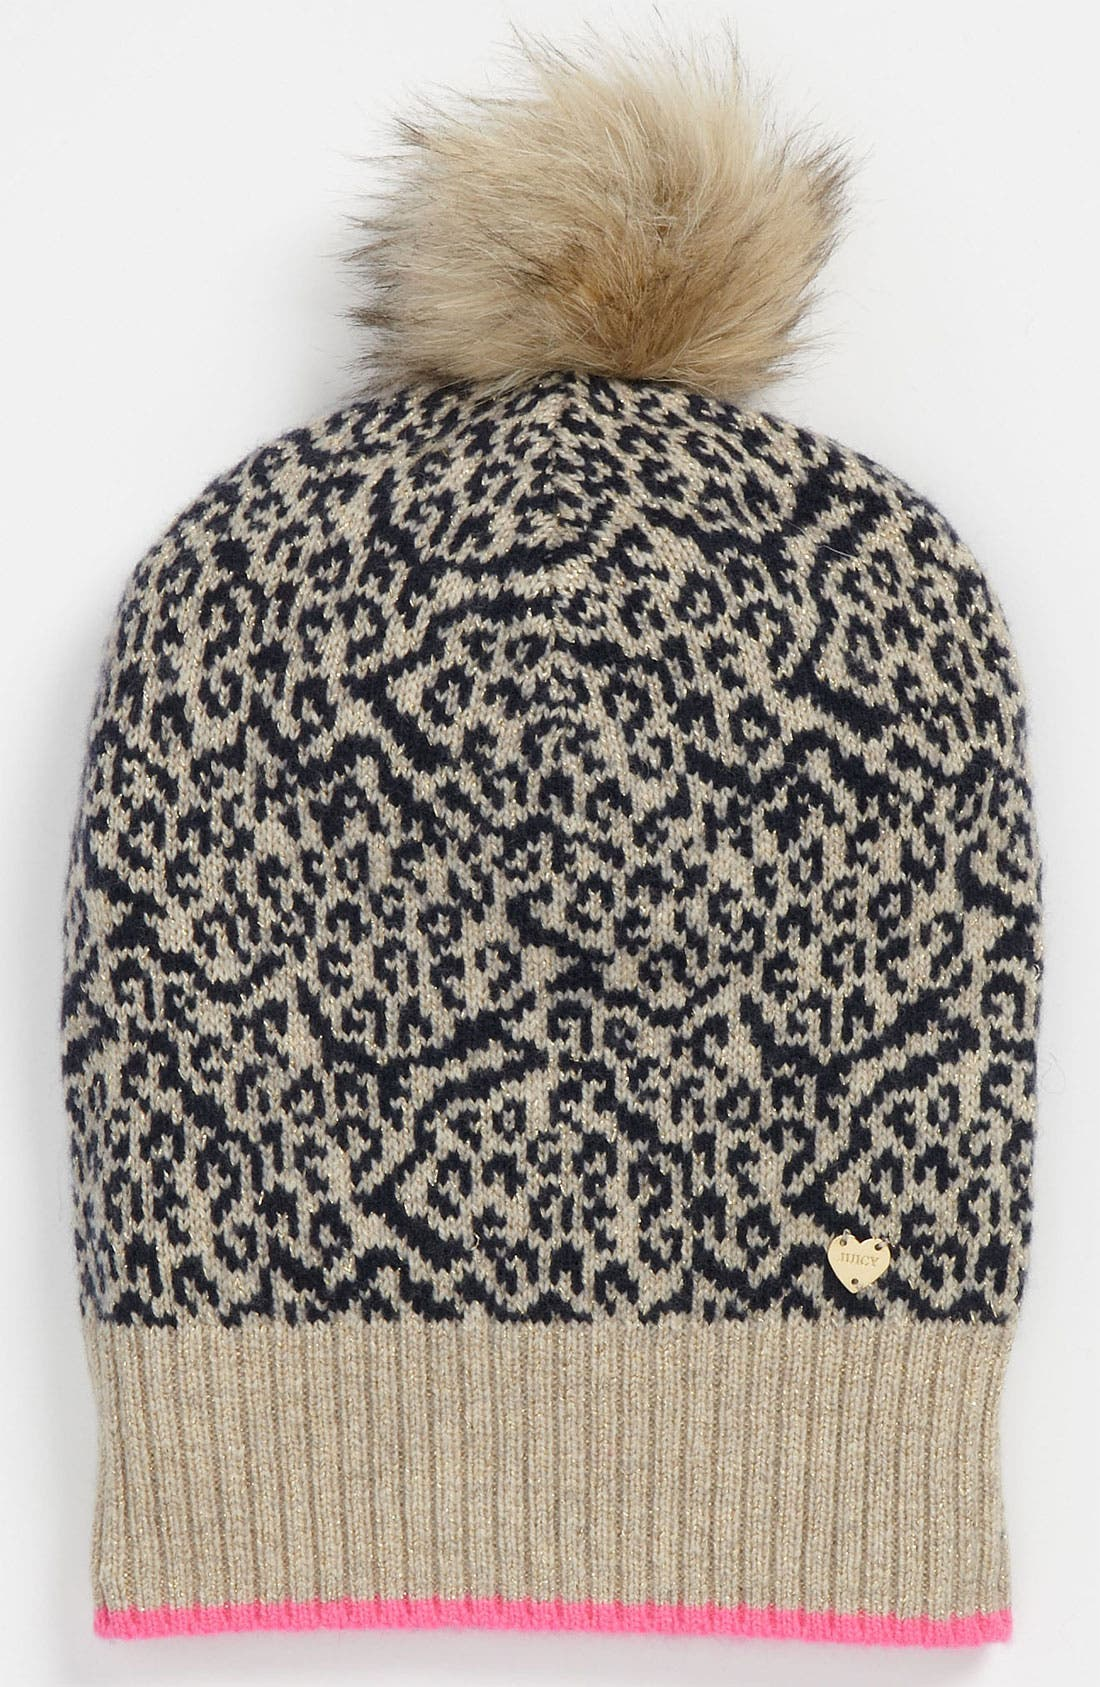 Alternate Image 1 Selected - Juicy Couture 'Snow Leopard' Hat (Girls)